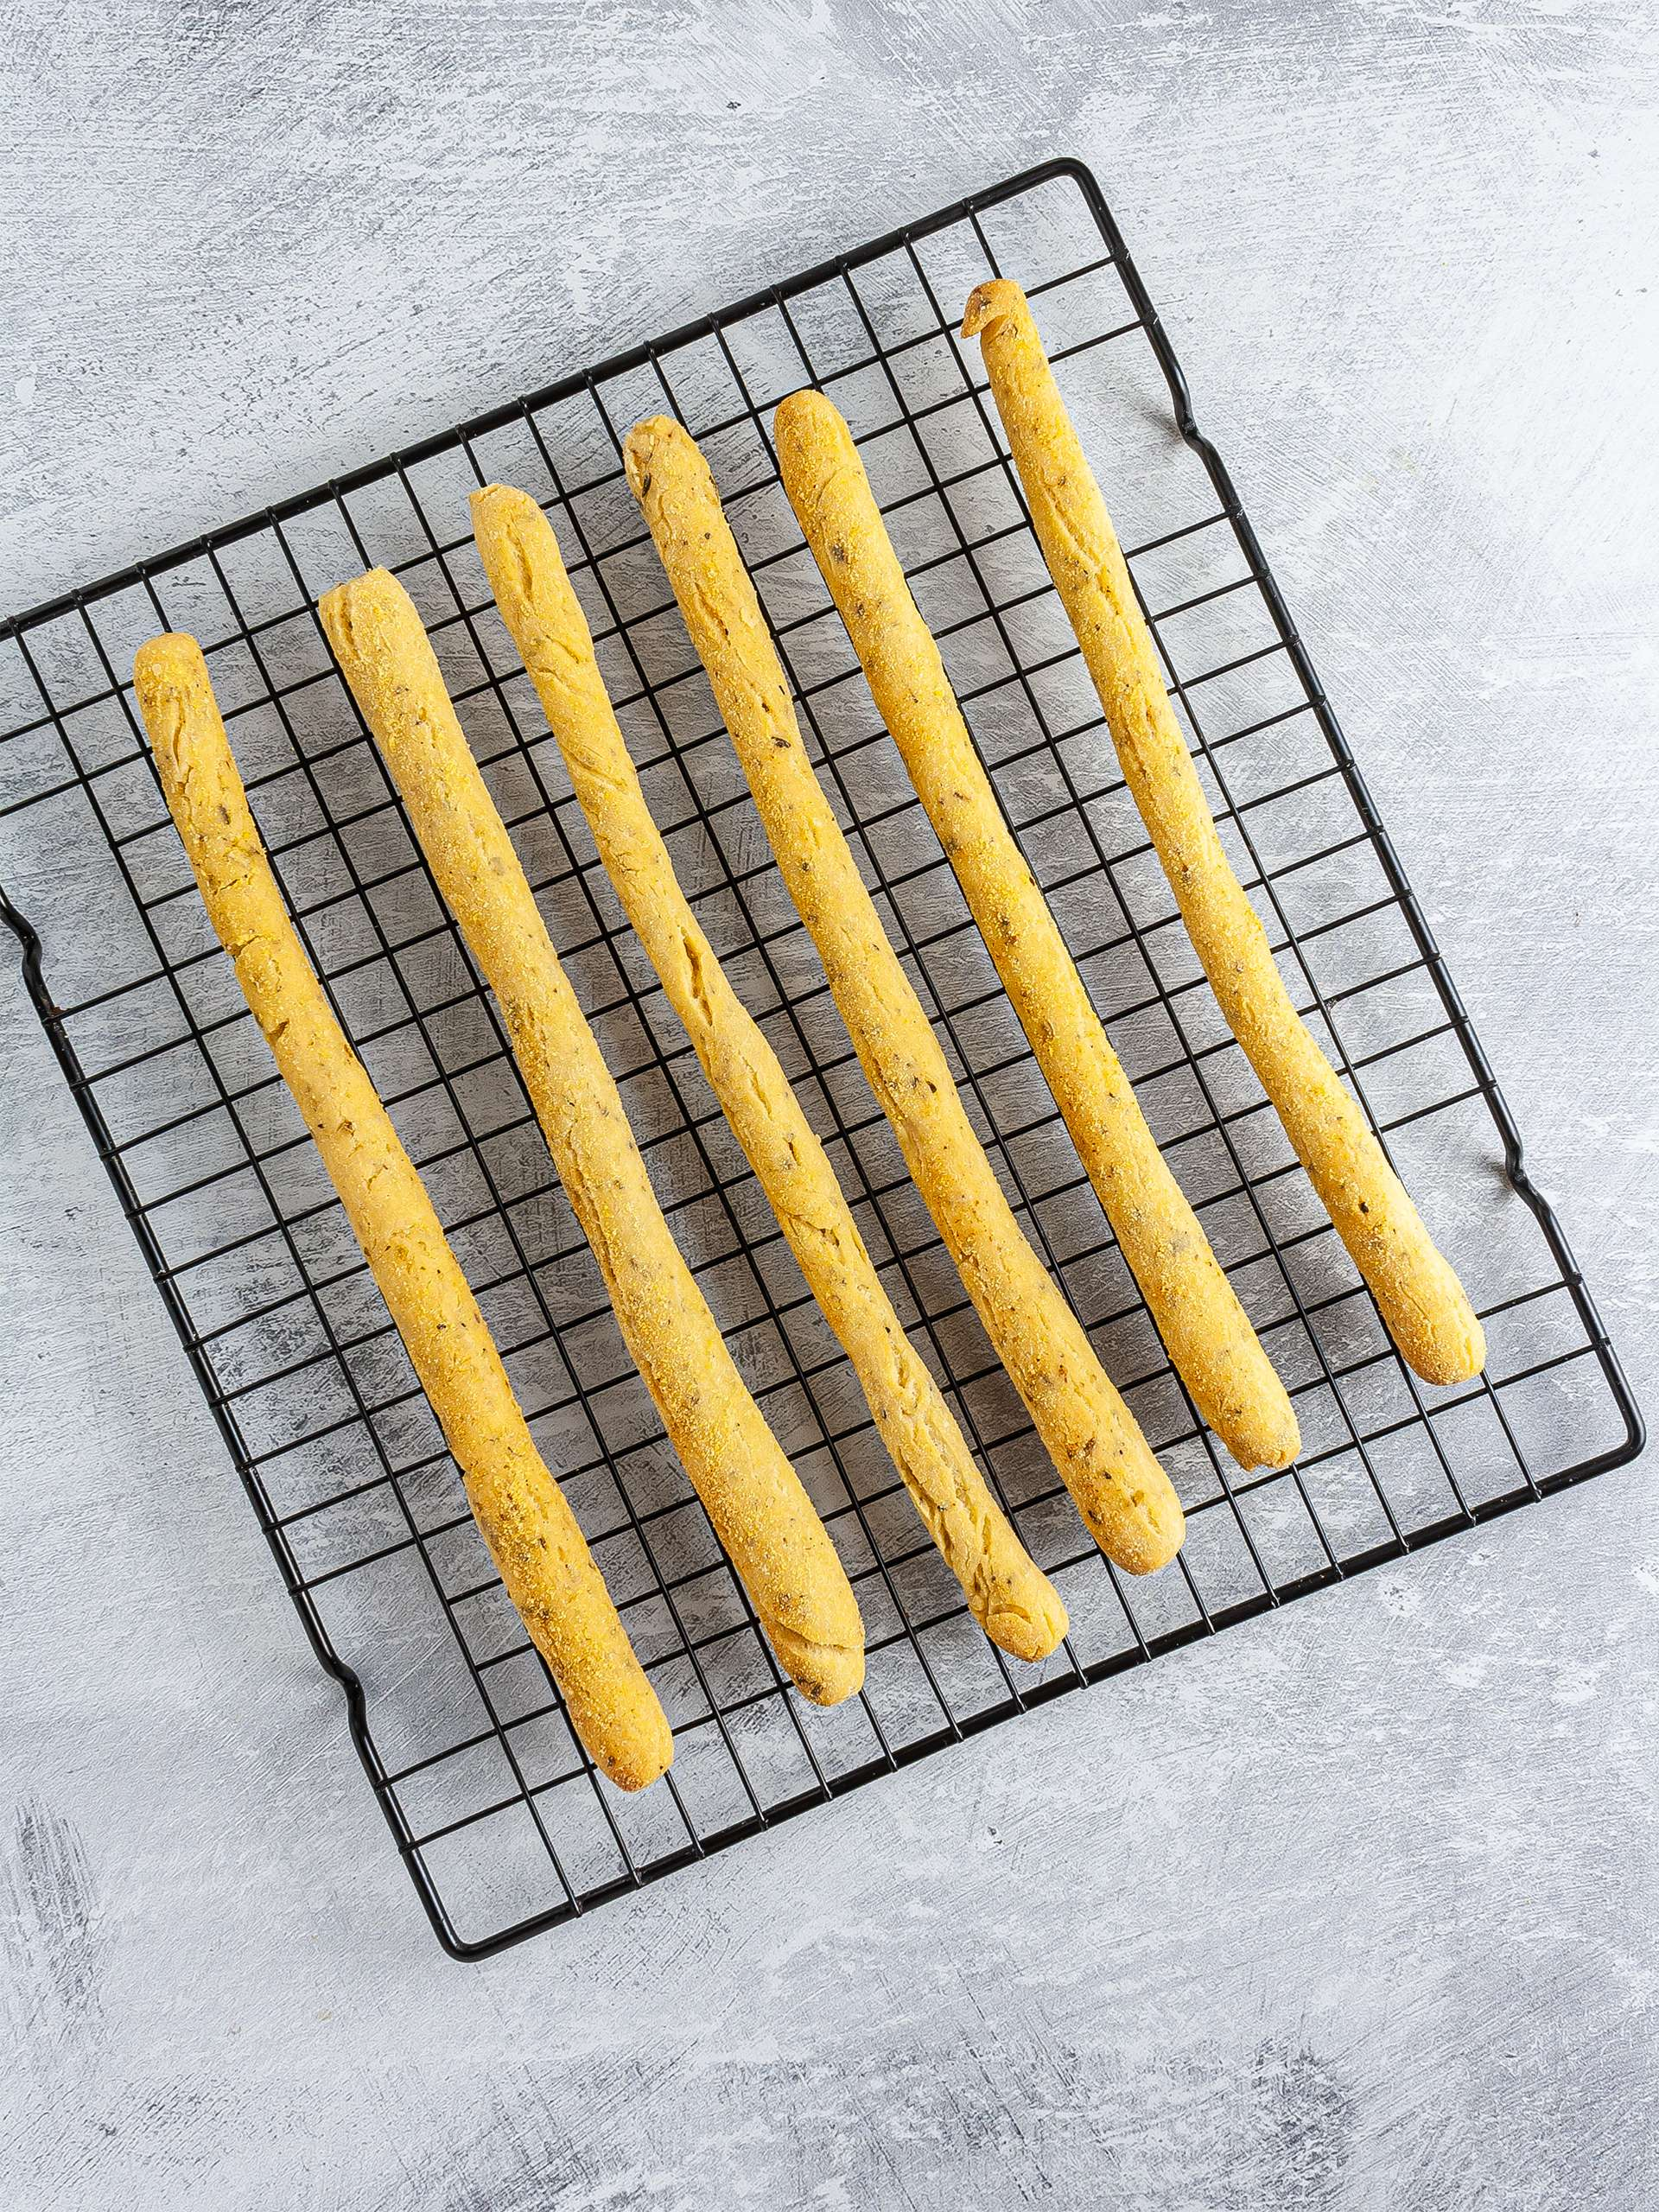 Baked breadsticks on a wire rack